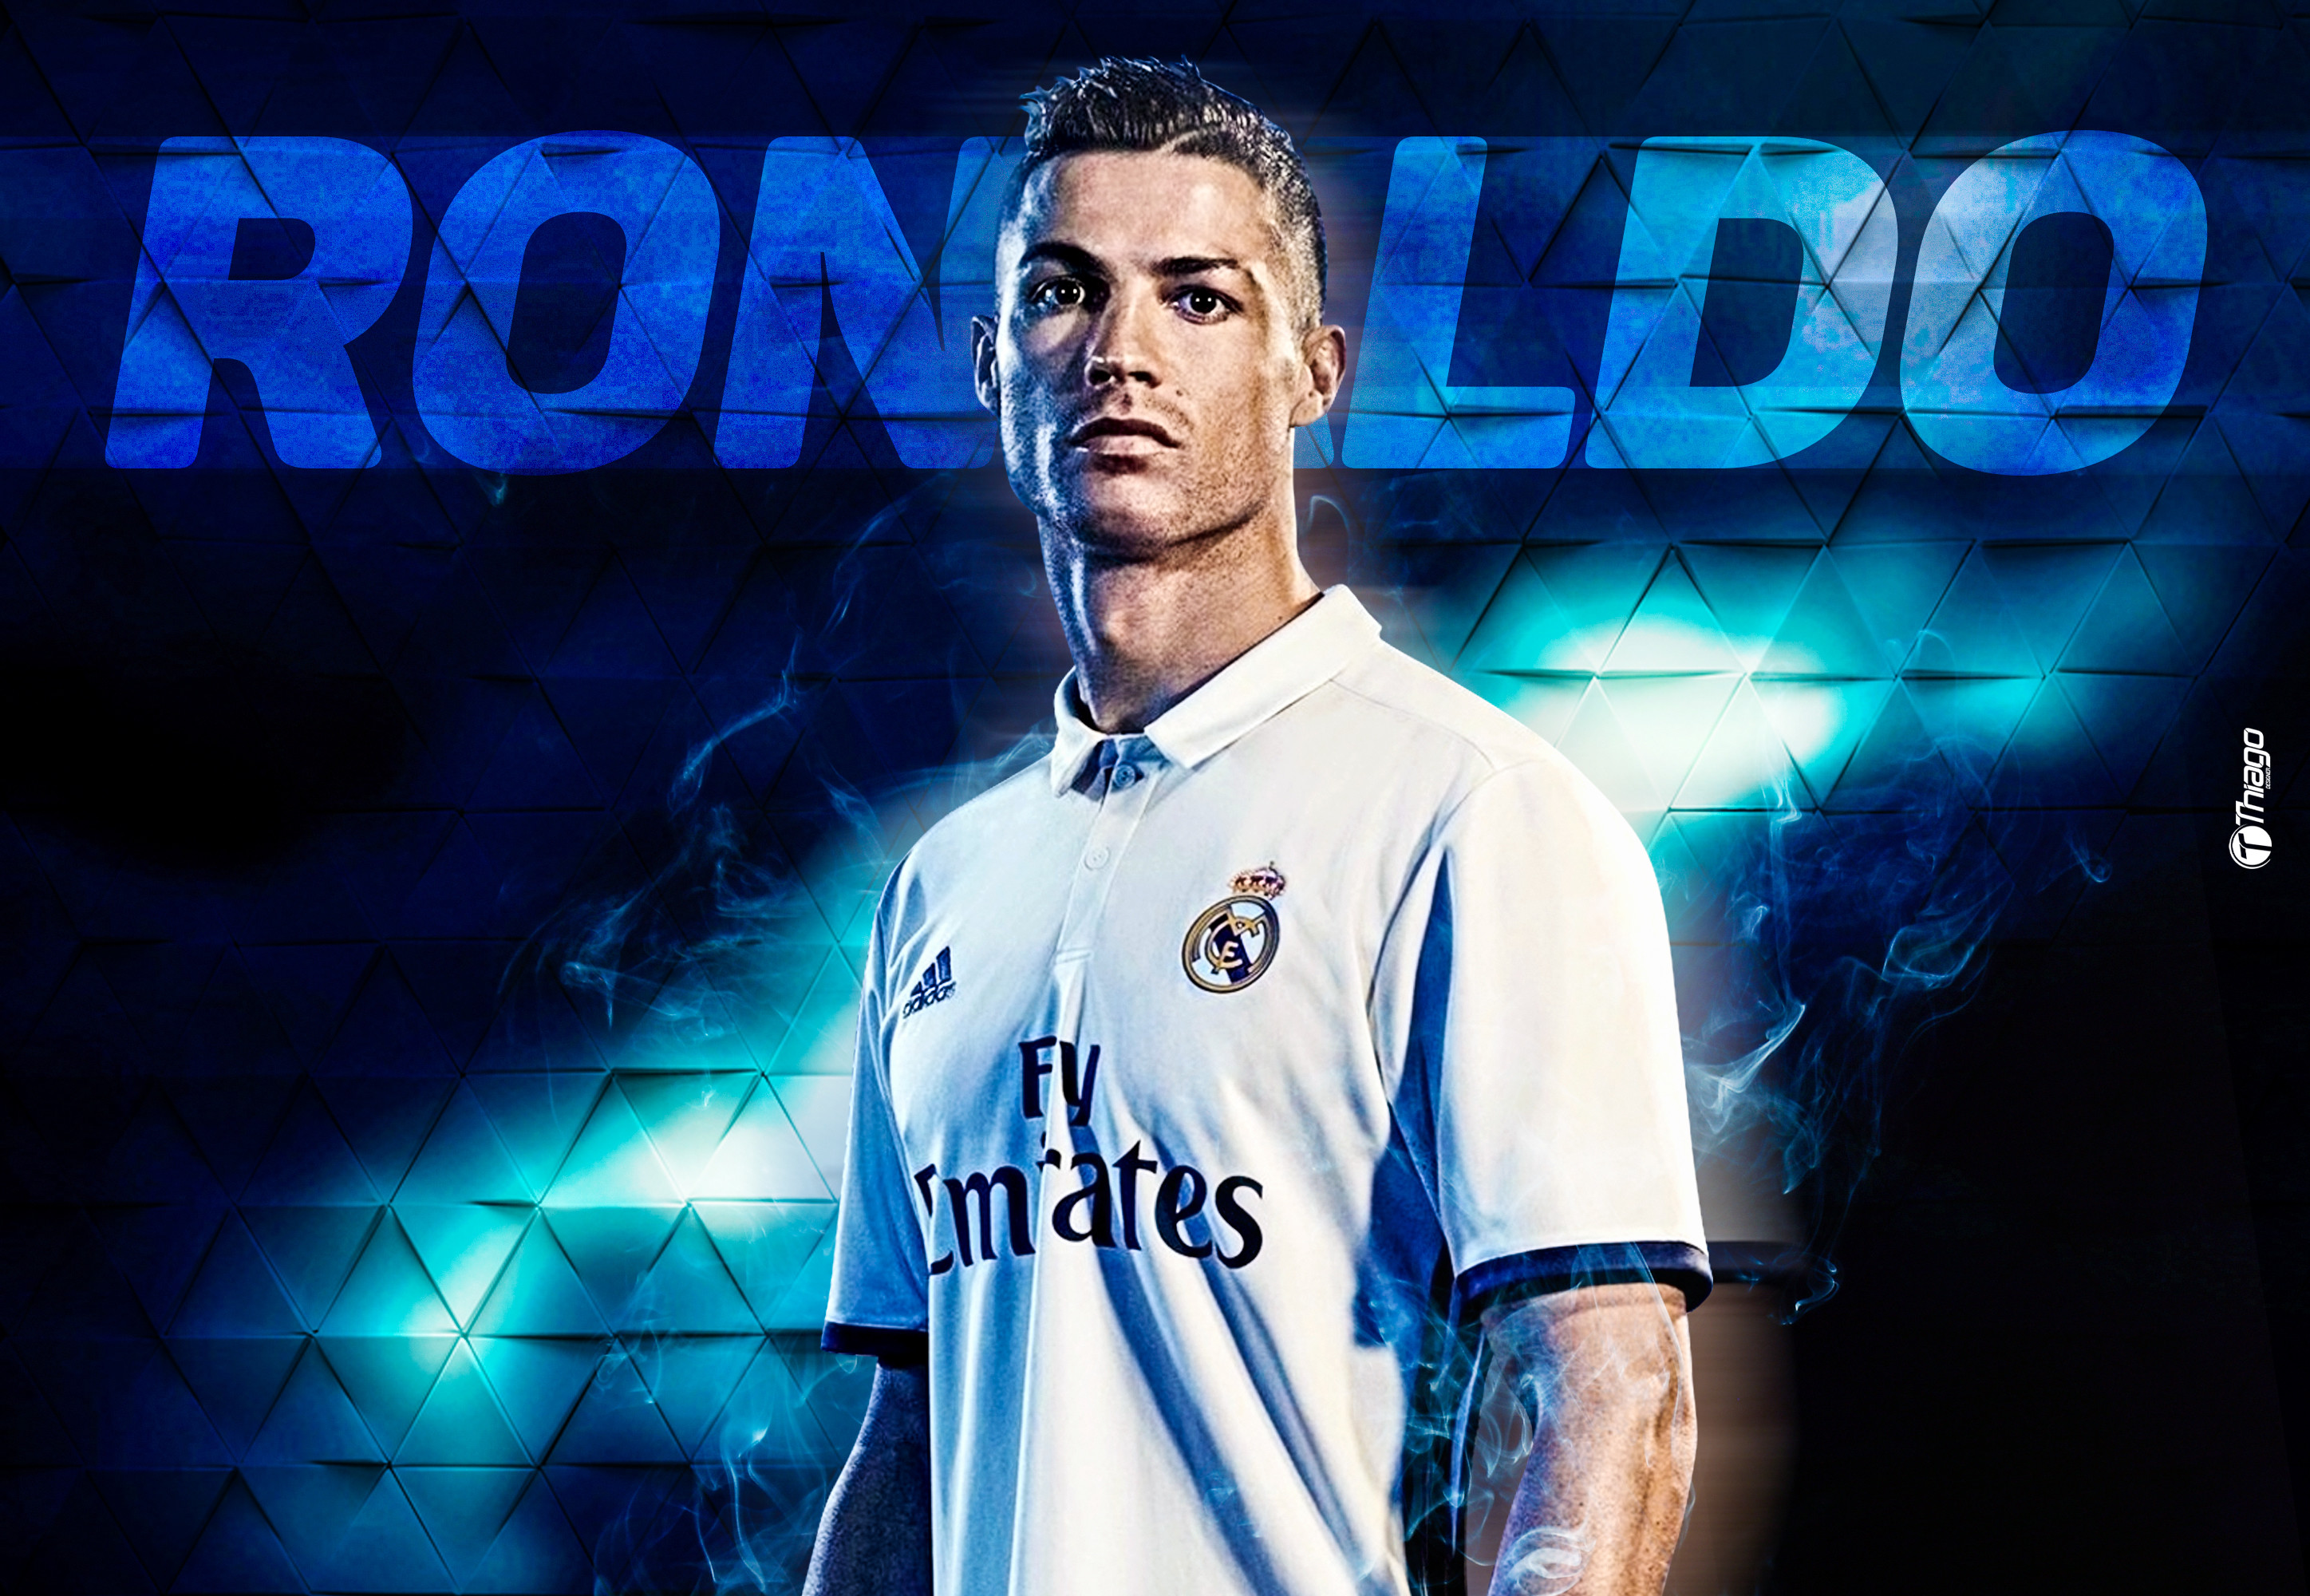 Cr7 Wallpaper Hd: CR7 Wallpaper 2018 (79+ Images